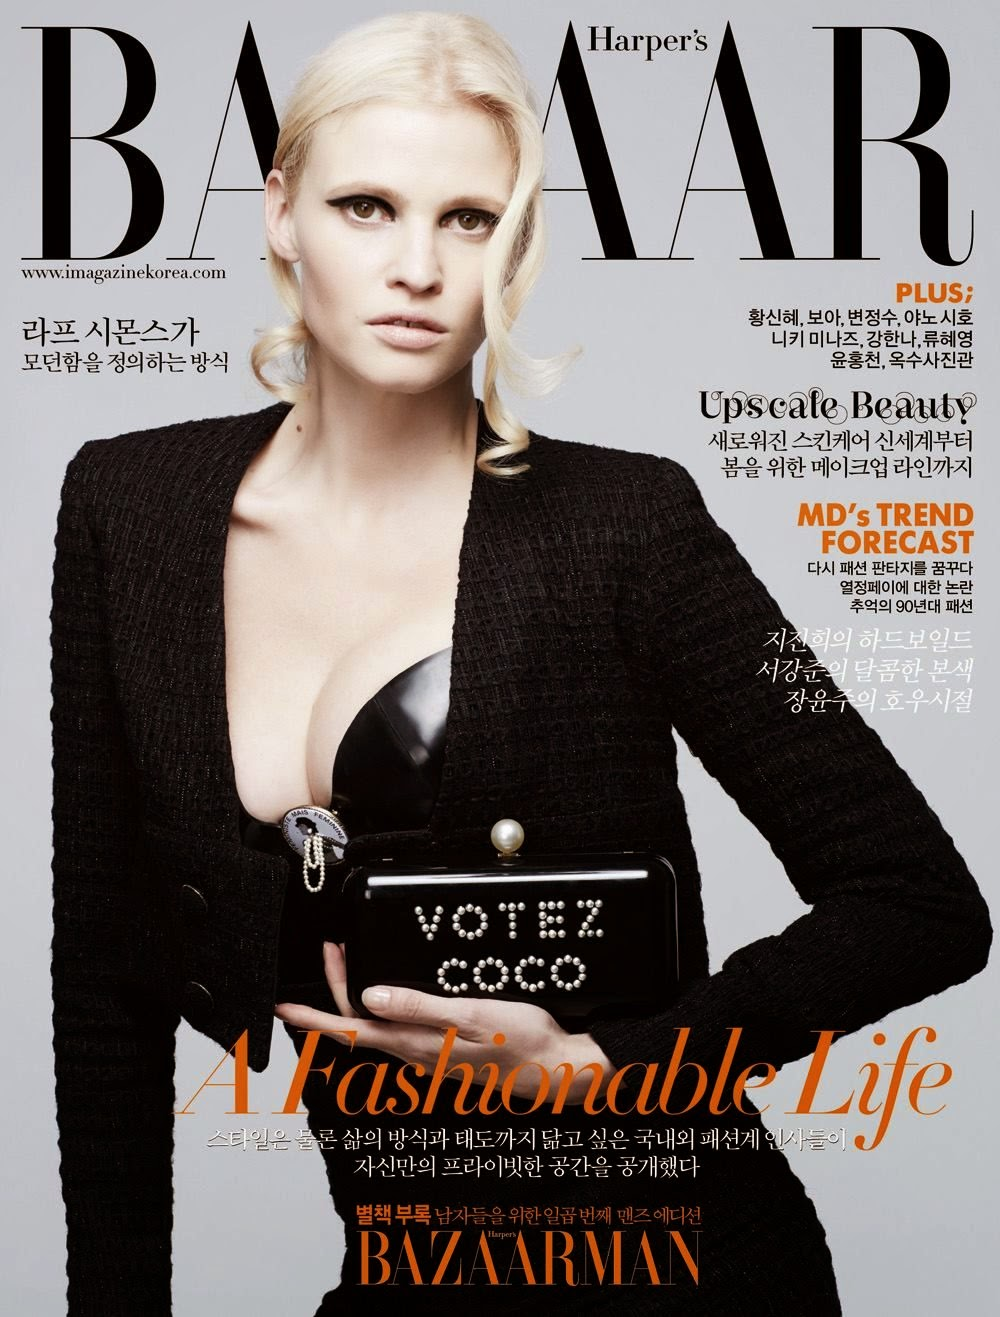 Model @ Lara Stone - Harper's Bazaar South Korea March 2015